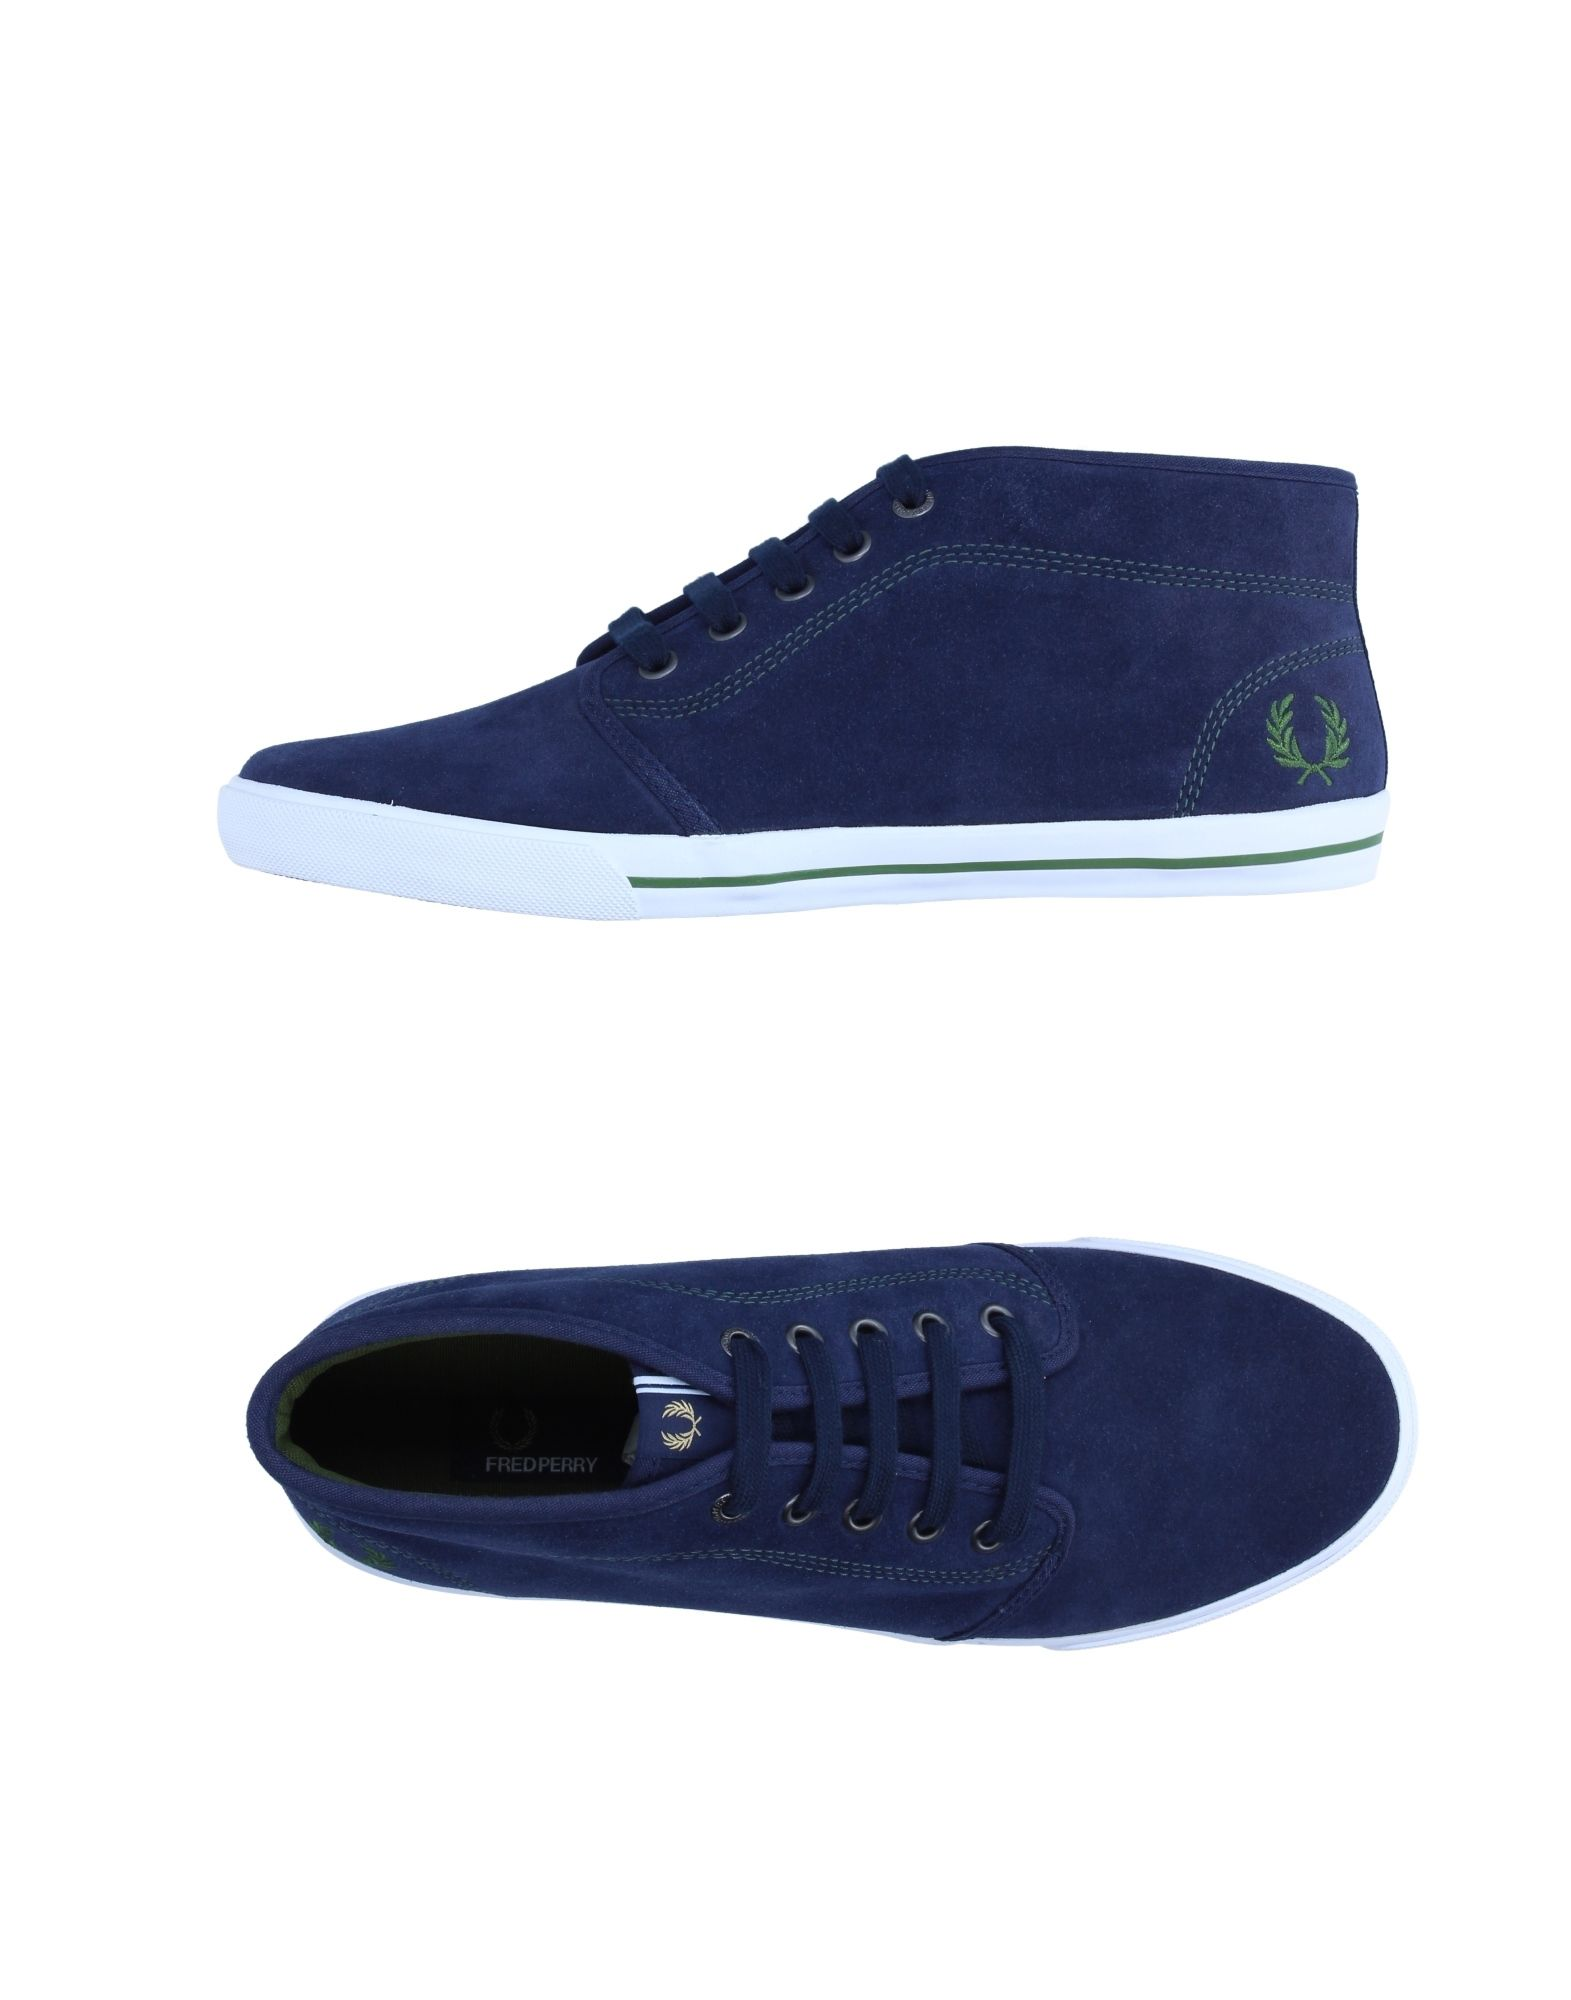 FRED PERRY Высокие кеды и кроссовки кеды кроссовки низкие fred perry kingston leather black